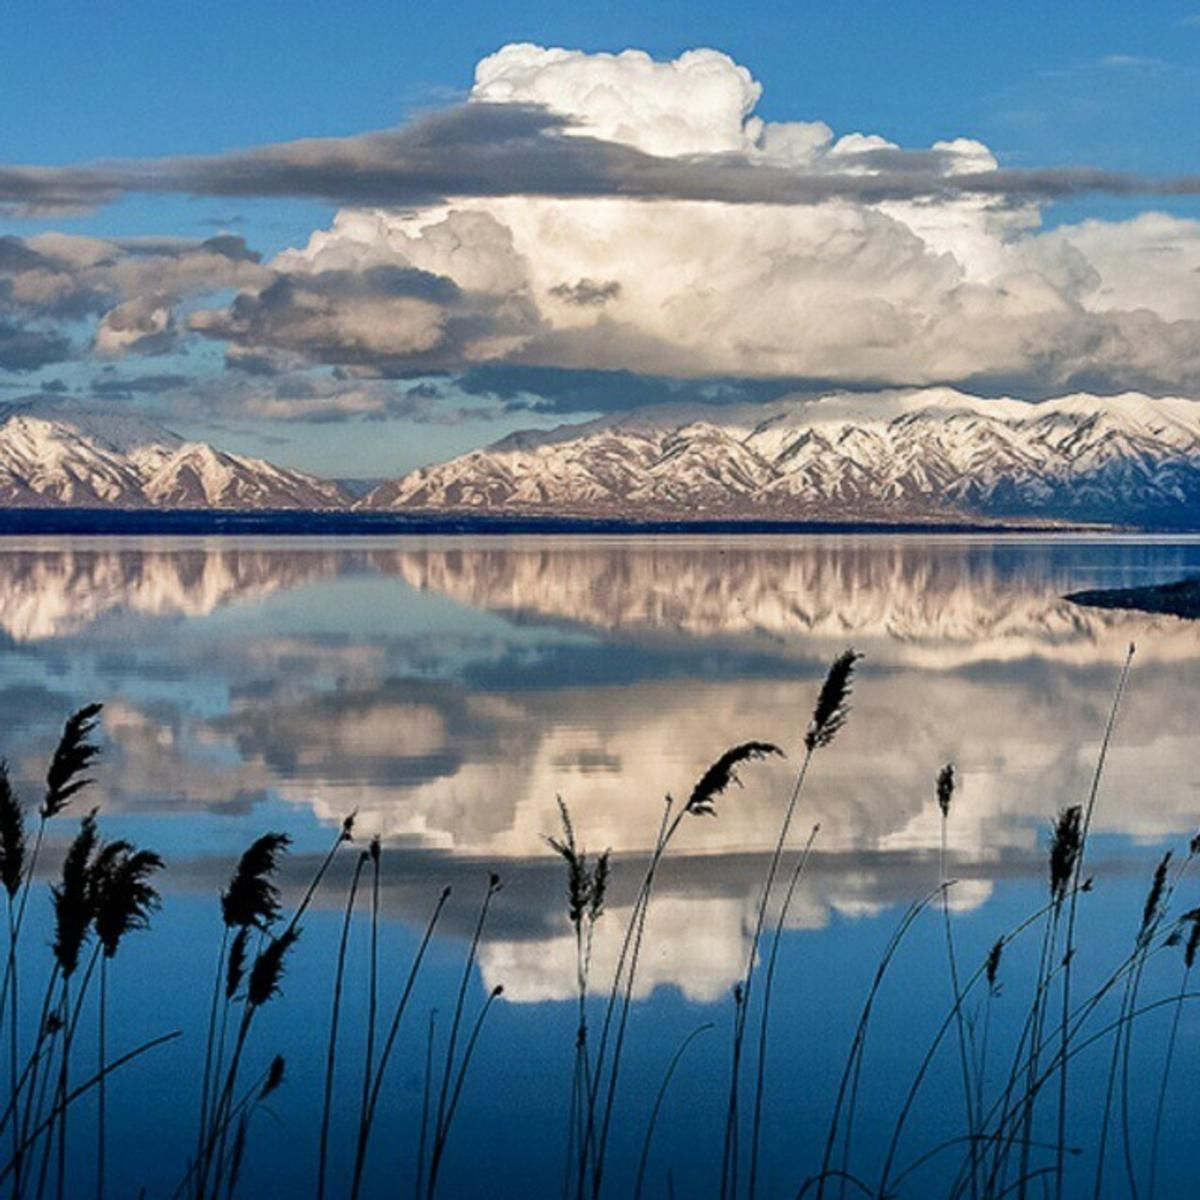 There S A Reason They Call It The Great Salt Lake Salt Lake City Photos Videos Scenic Lakes Utah Travel Lake Photography